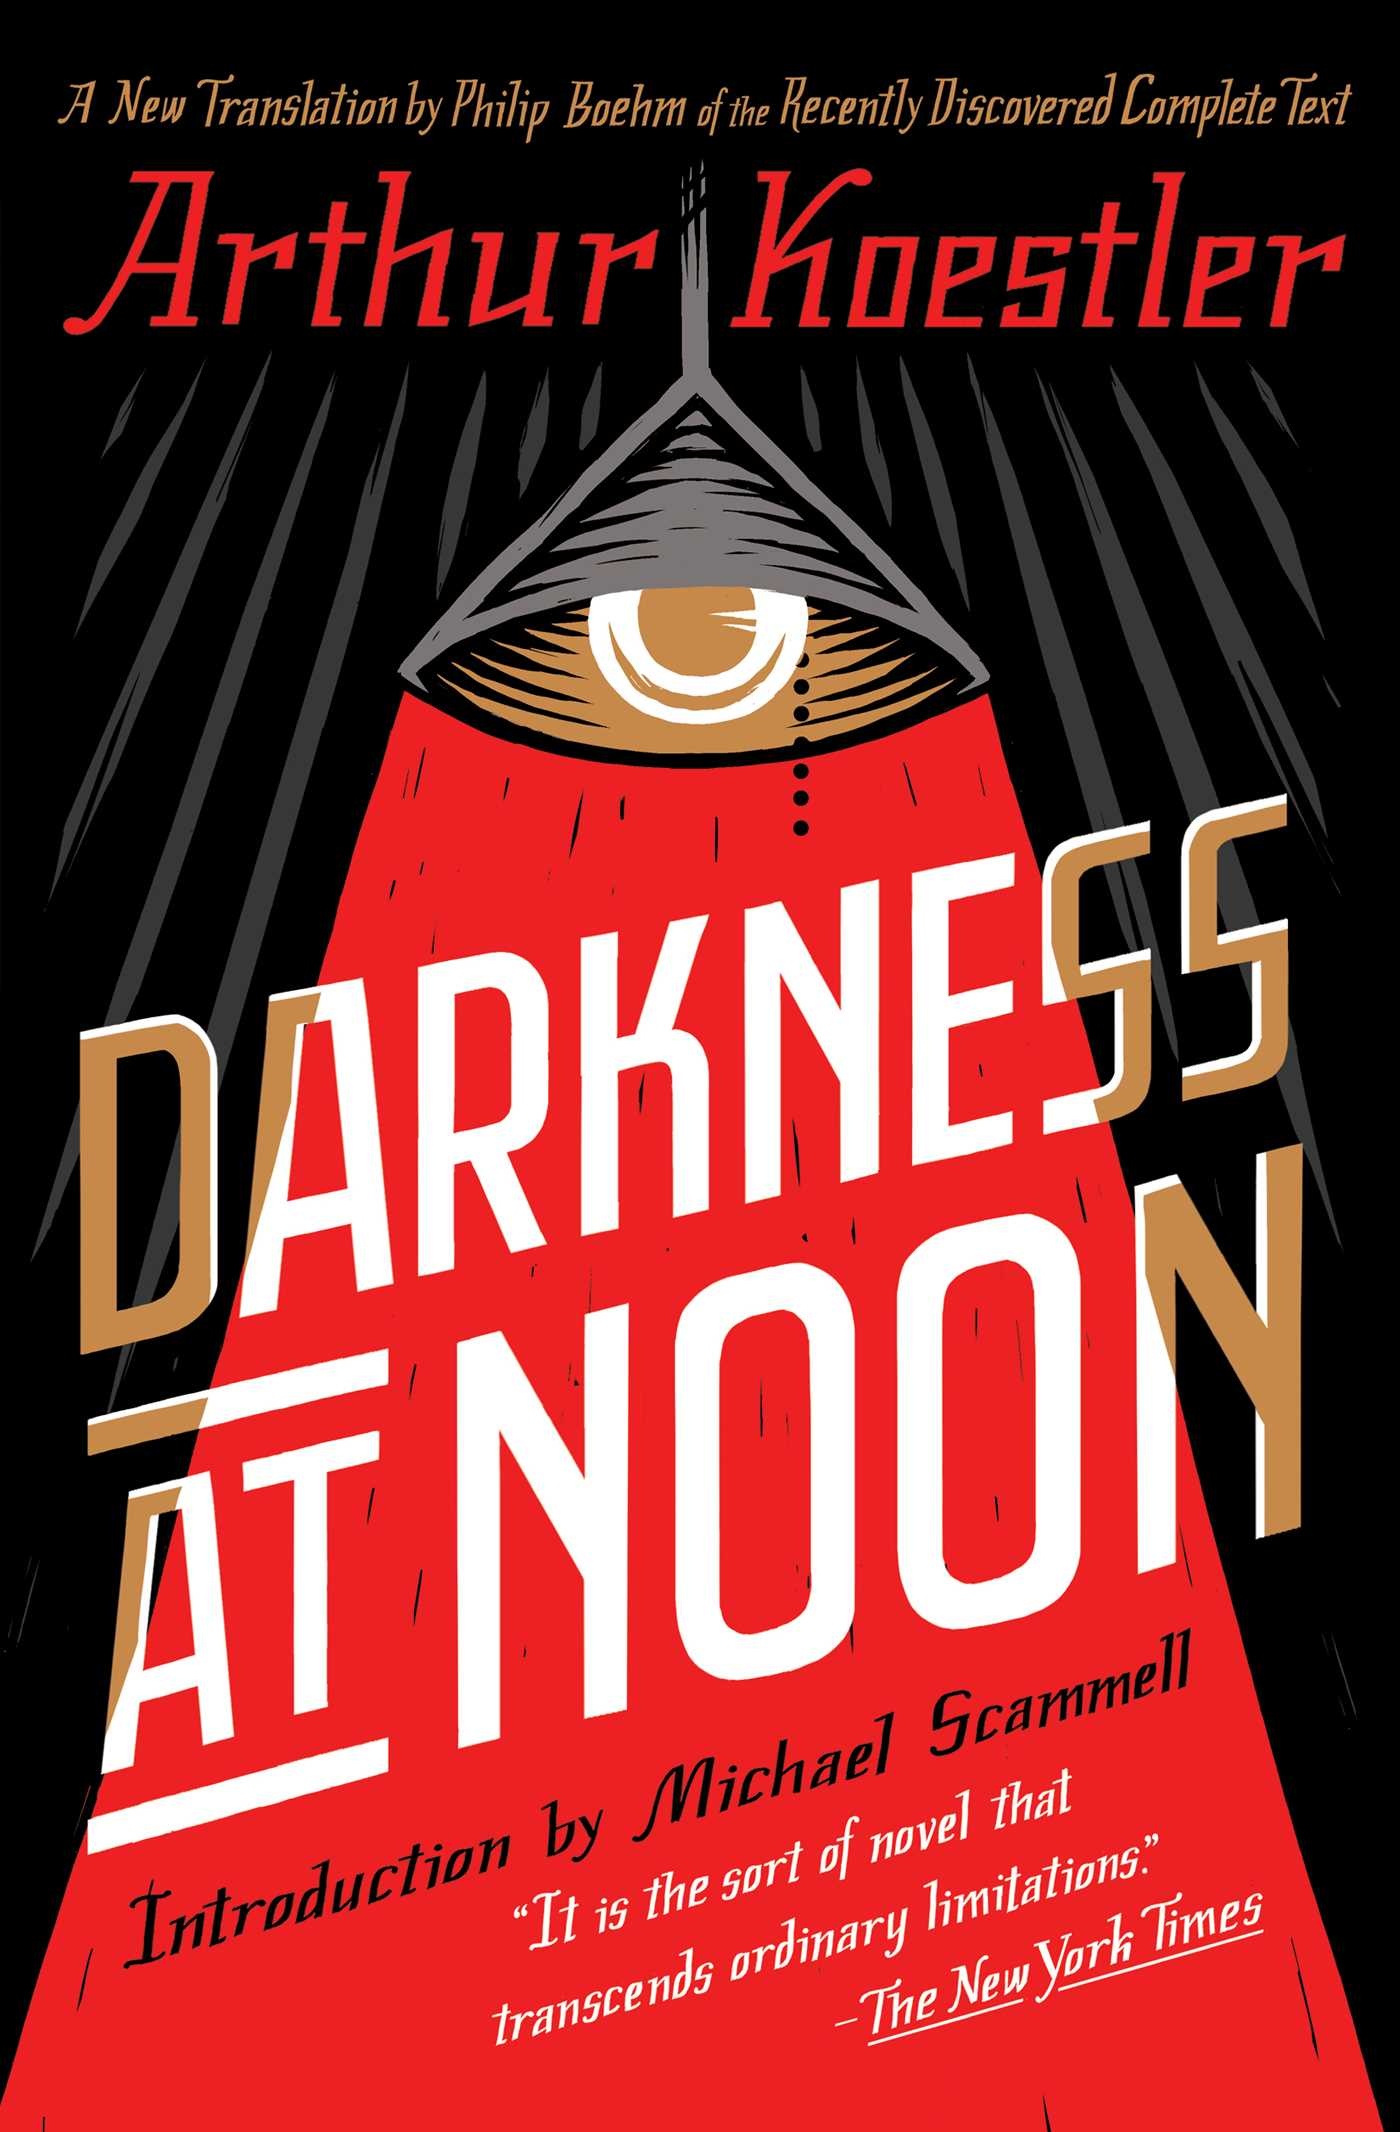 an analysis of darkness at noon a novel by koestler His views on totalitarian rule appeared in his second novel, darkness at noon arthur koestler darkness at noon it included an analysis of faith in politics.